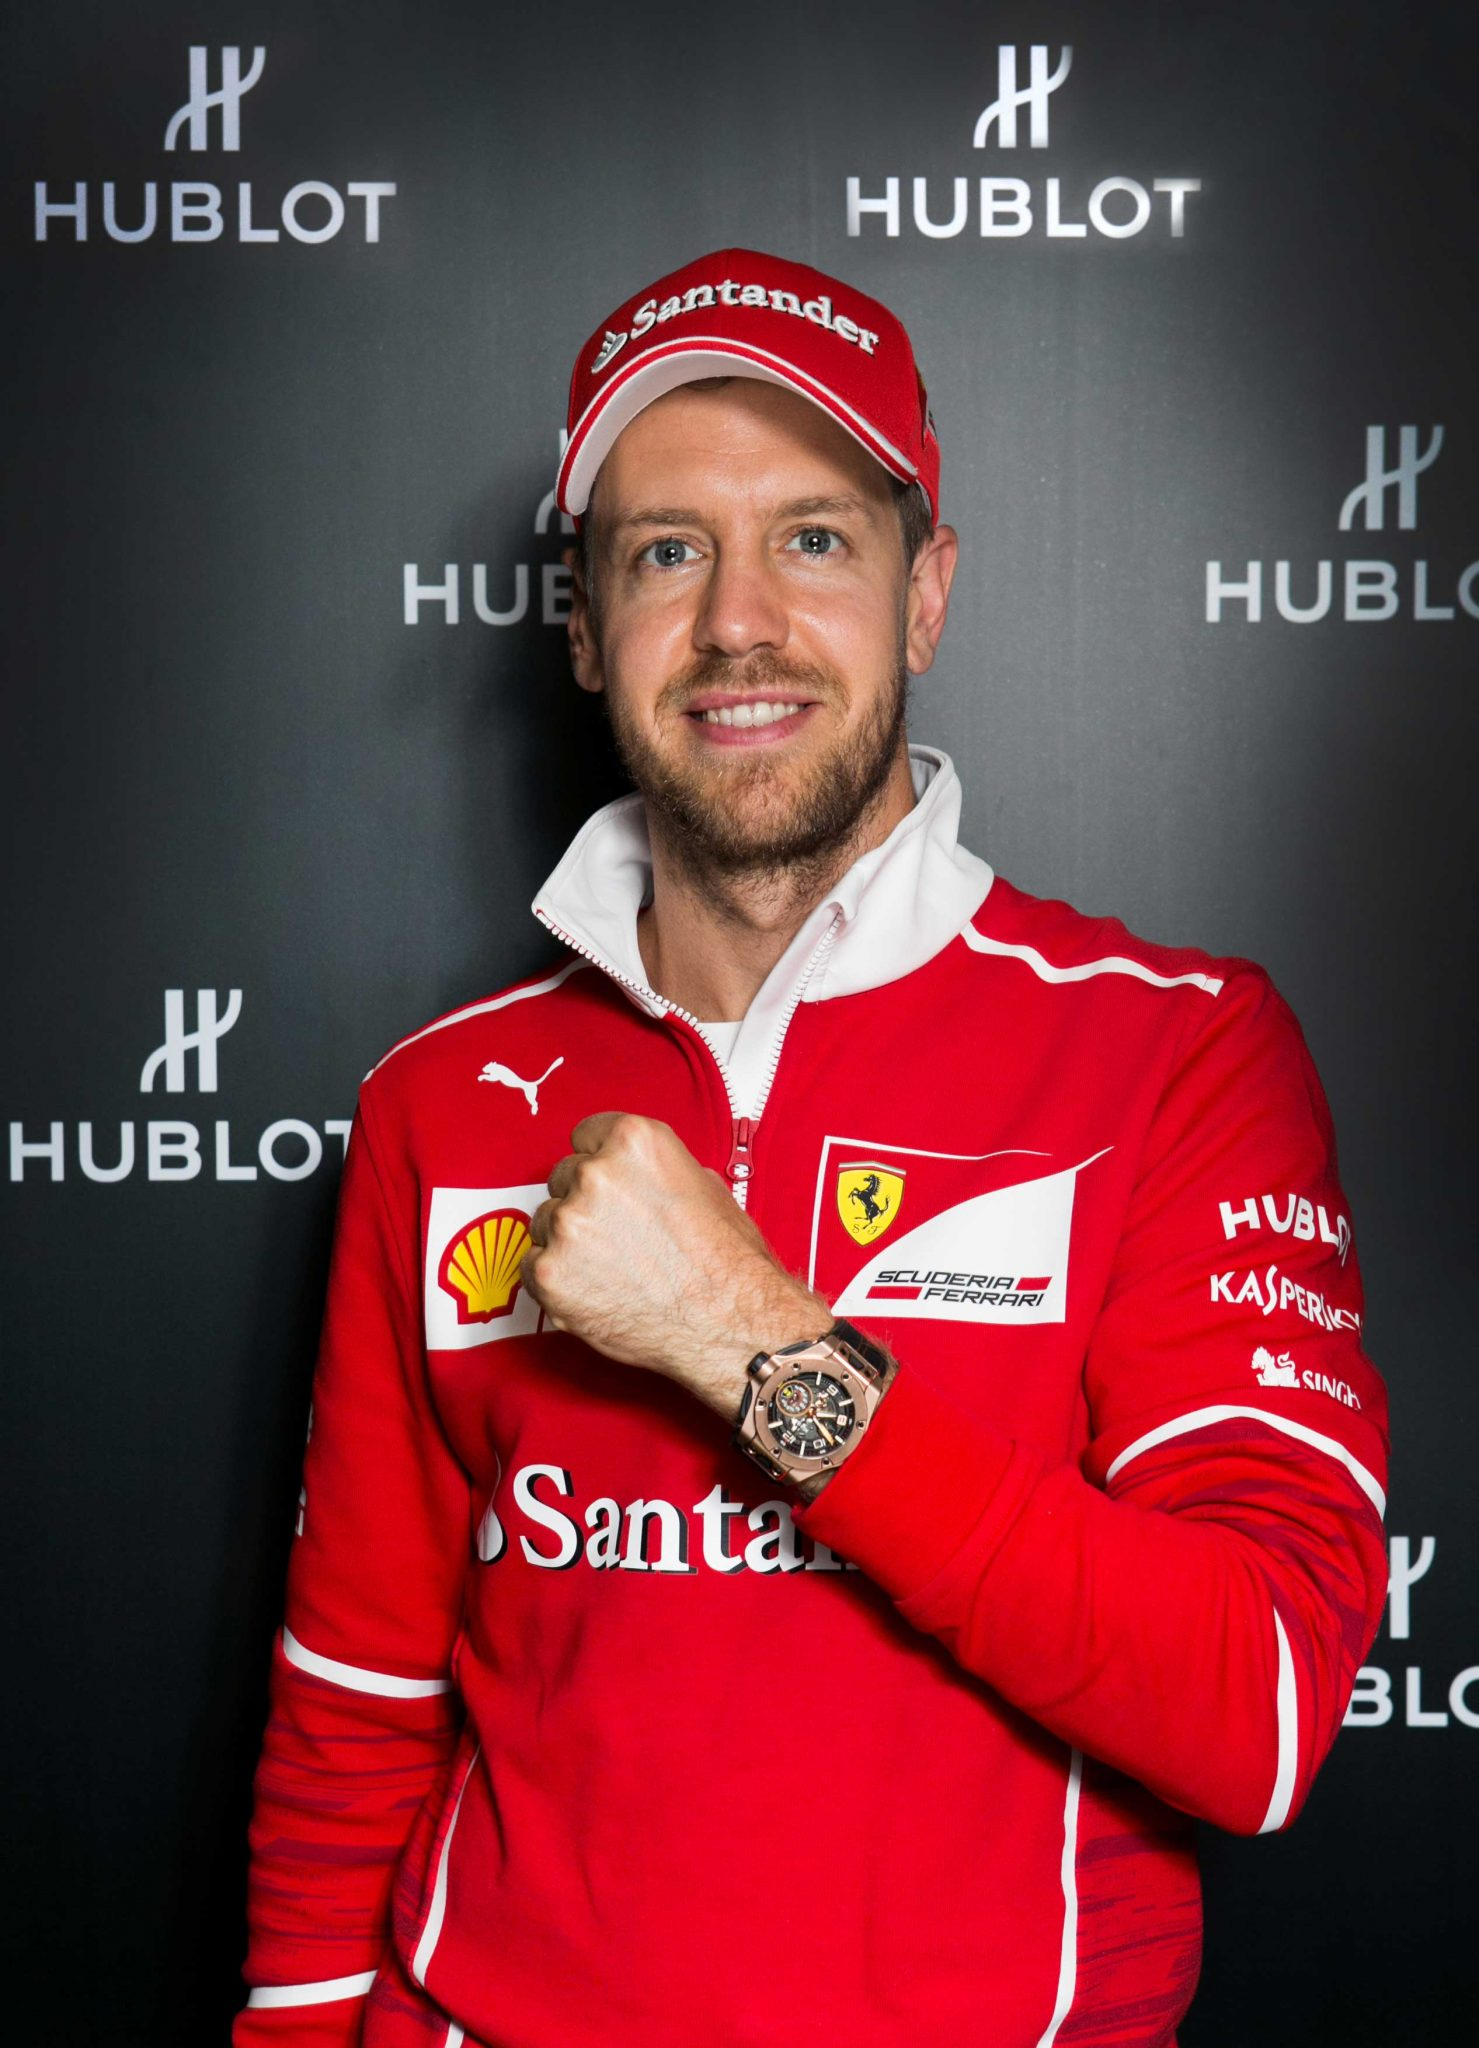 Sebastian Vettel At The Reopening Of Hublot Shanghai HD Wallpapers Download free images and photos [musssic.tk]